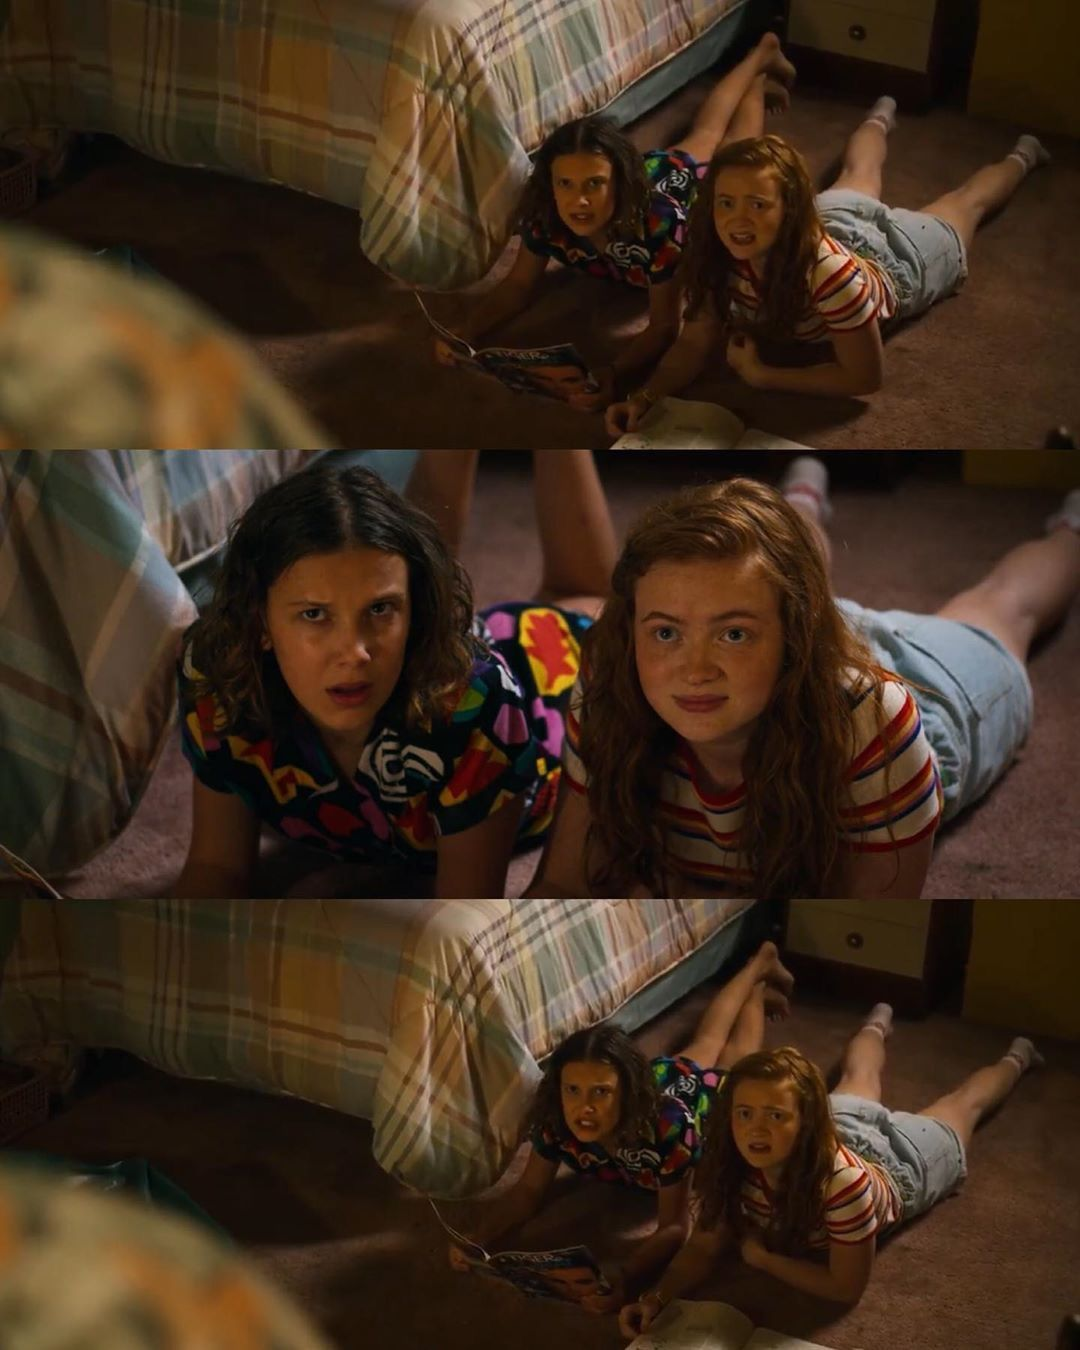 Eleven and Max having a sleepover  Stranger Things Season 3